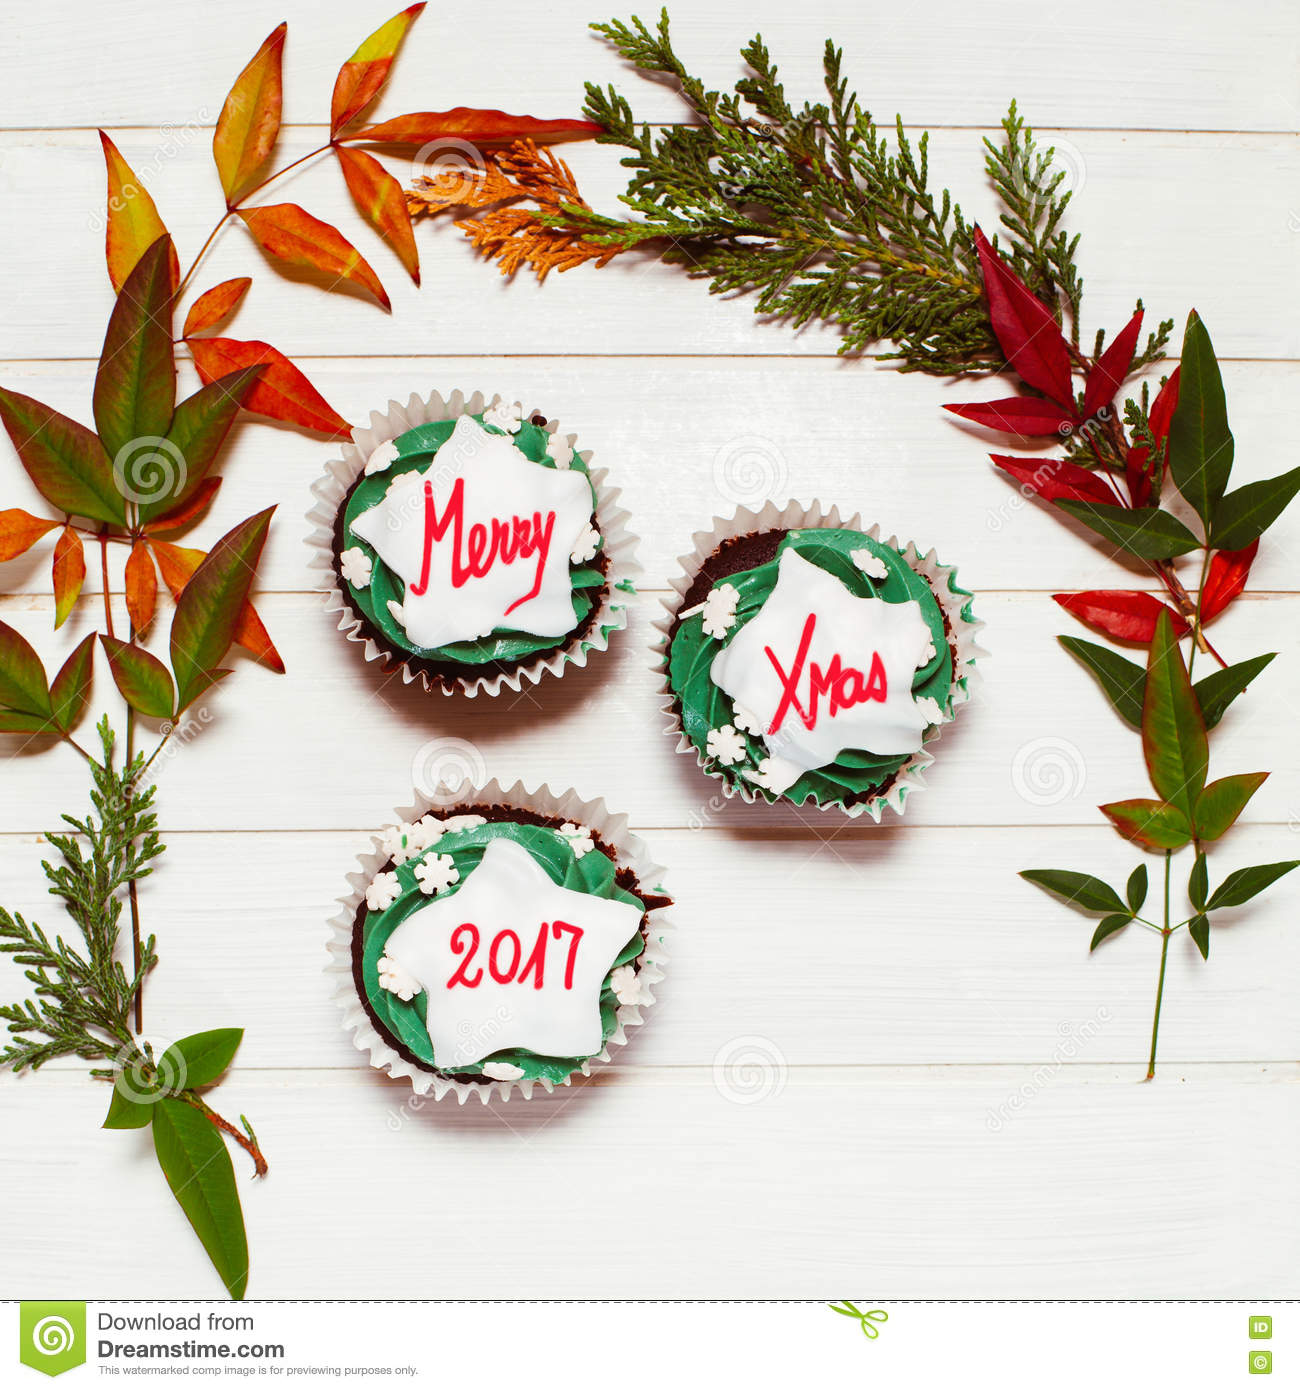 Cupcake With Christmas Massage Stock Photo - Image of branch ...